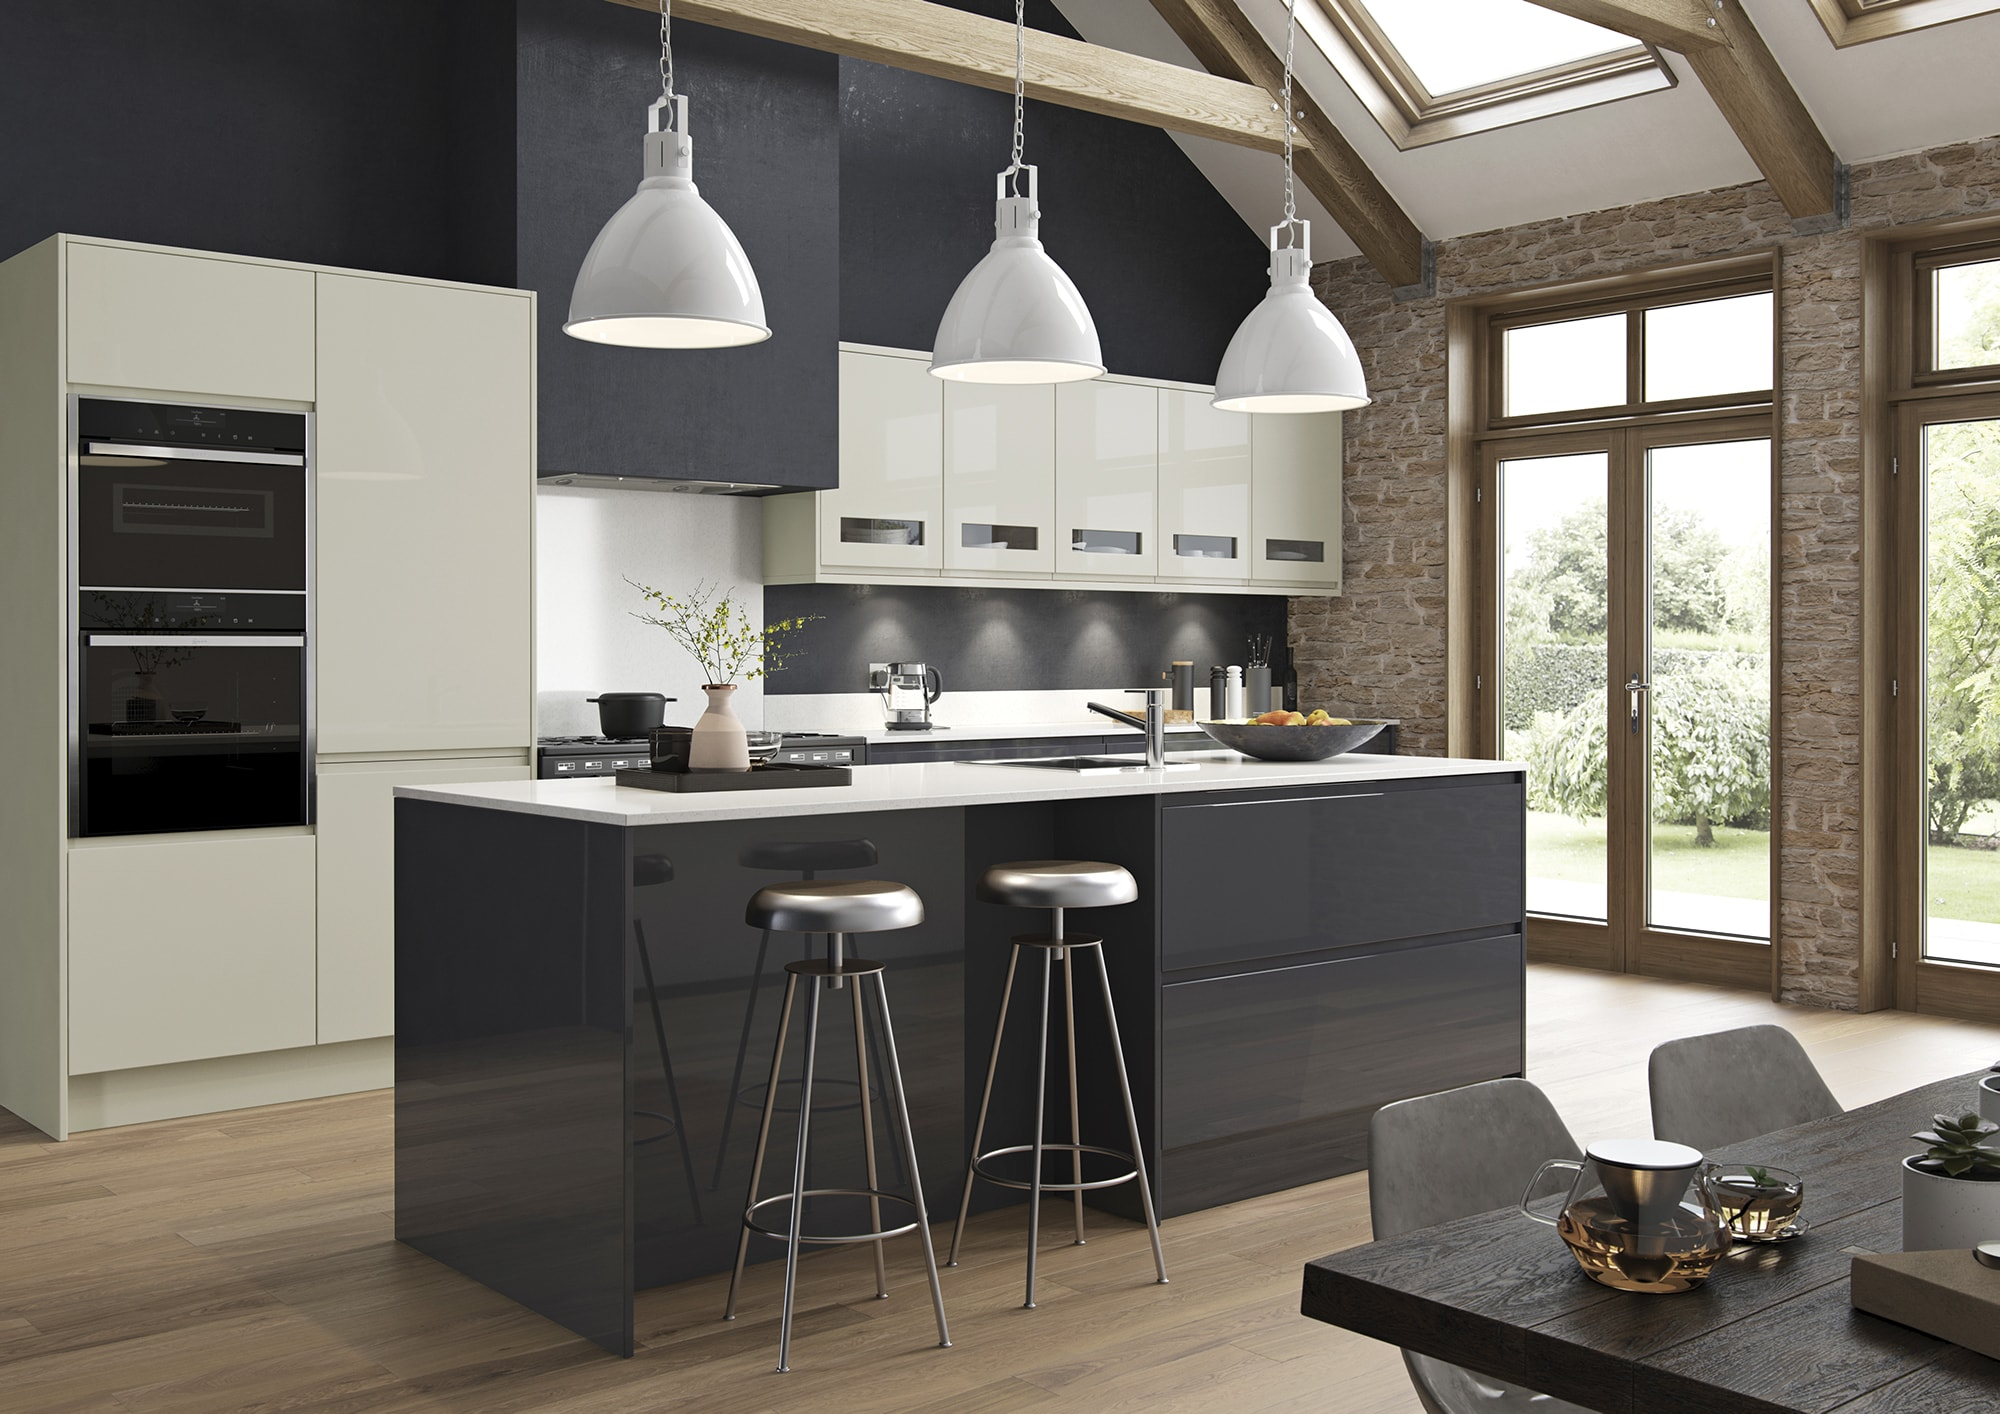 photos of kitchens island for kitchen handless strada gloss porcelain graphite uform in